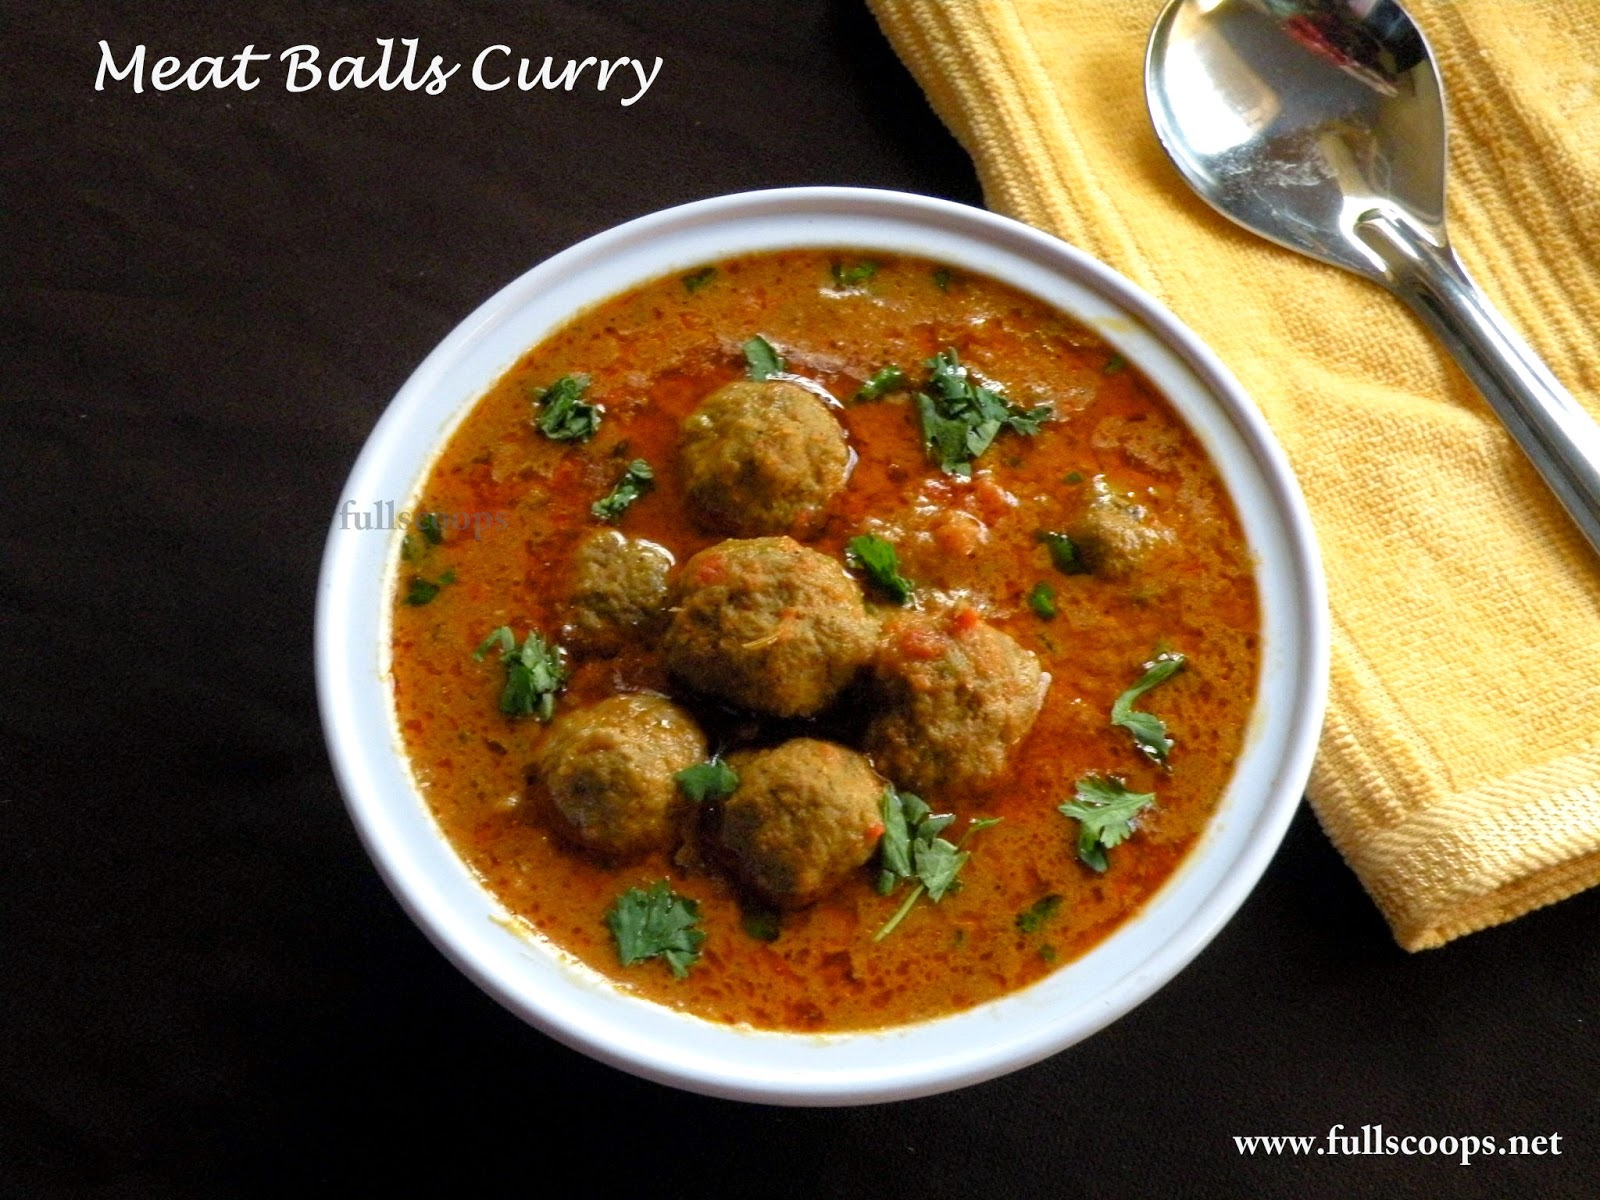 Meat Balls Curry